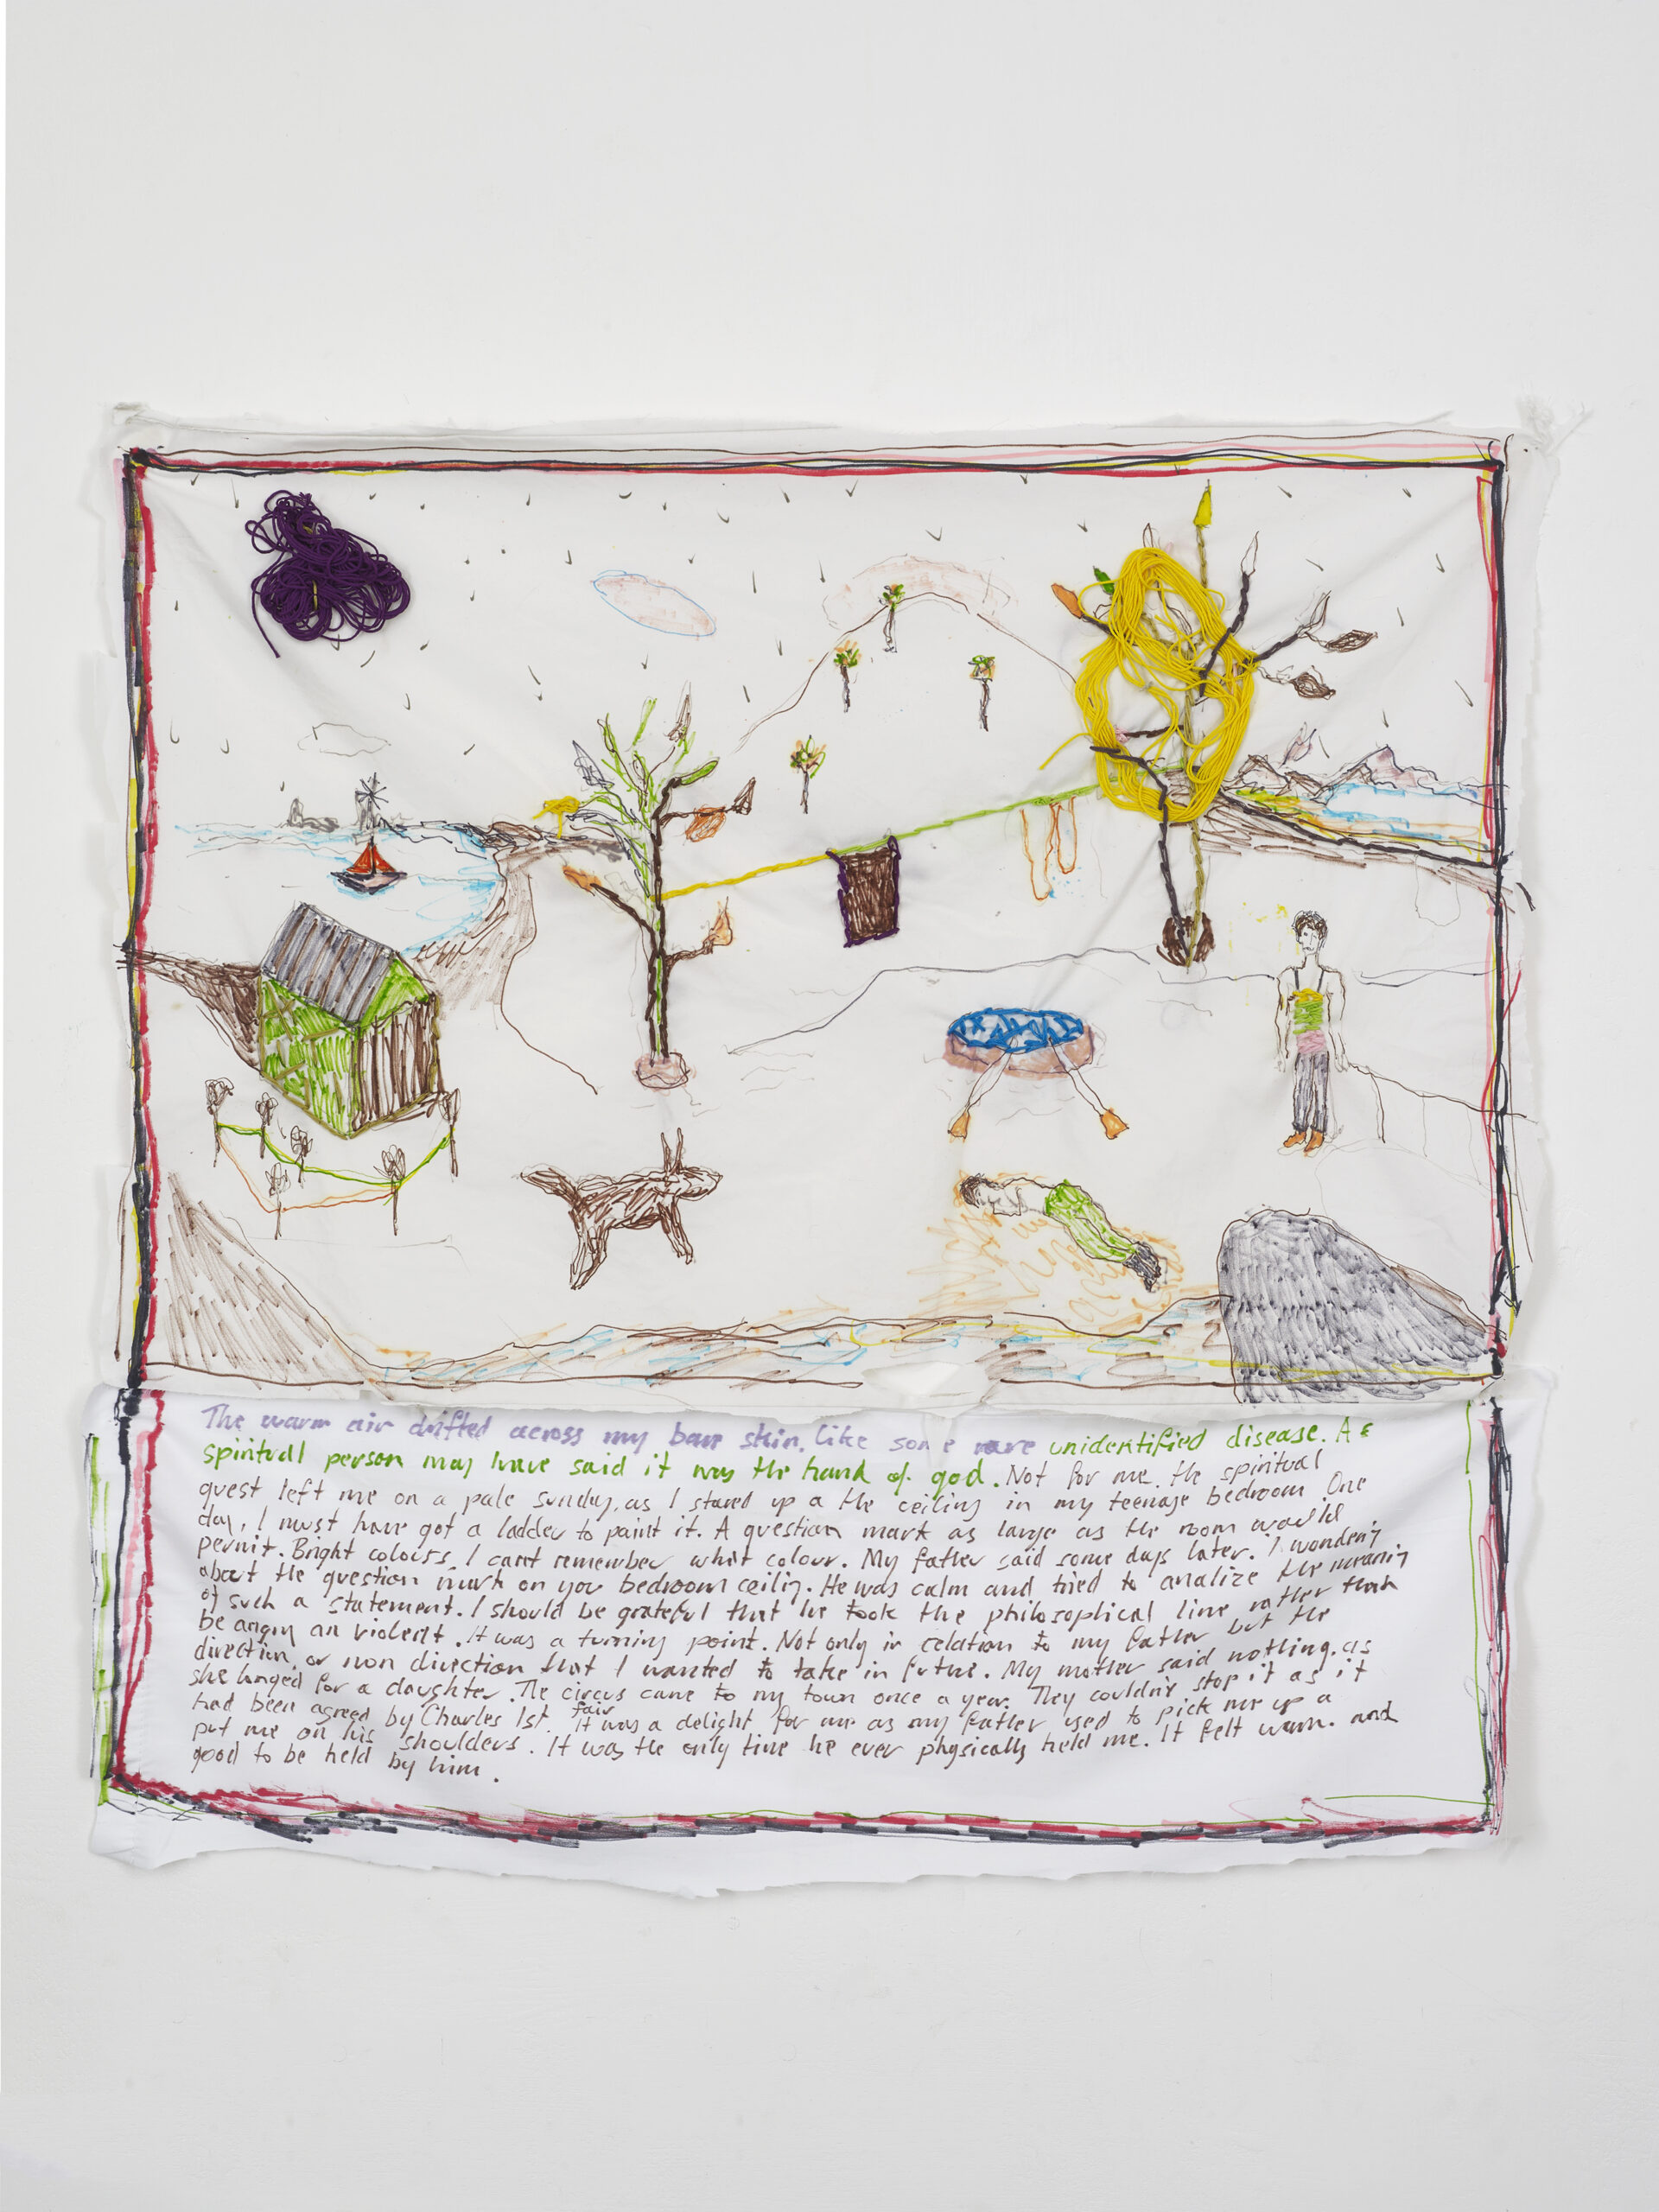 Brian Dawn Chalkley My mother said nothing (2020) Pencil, felt tip and thread on cotton pillow case, 75 cm x 65 cm.